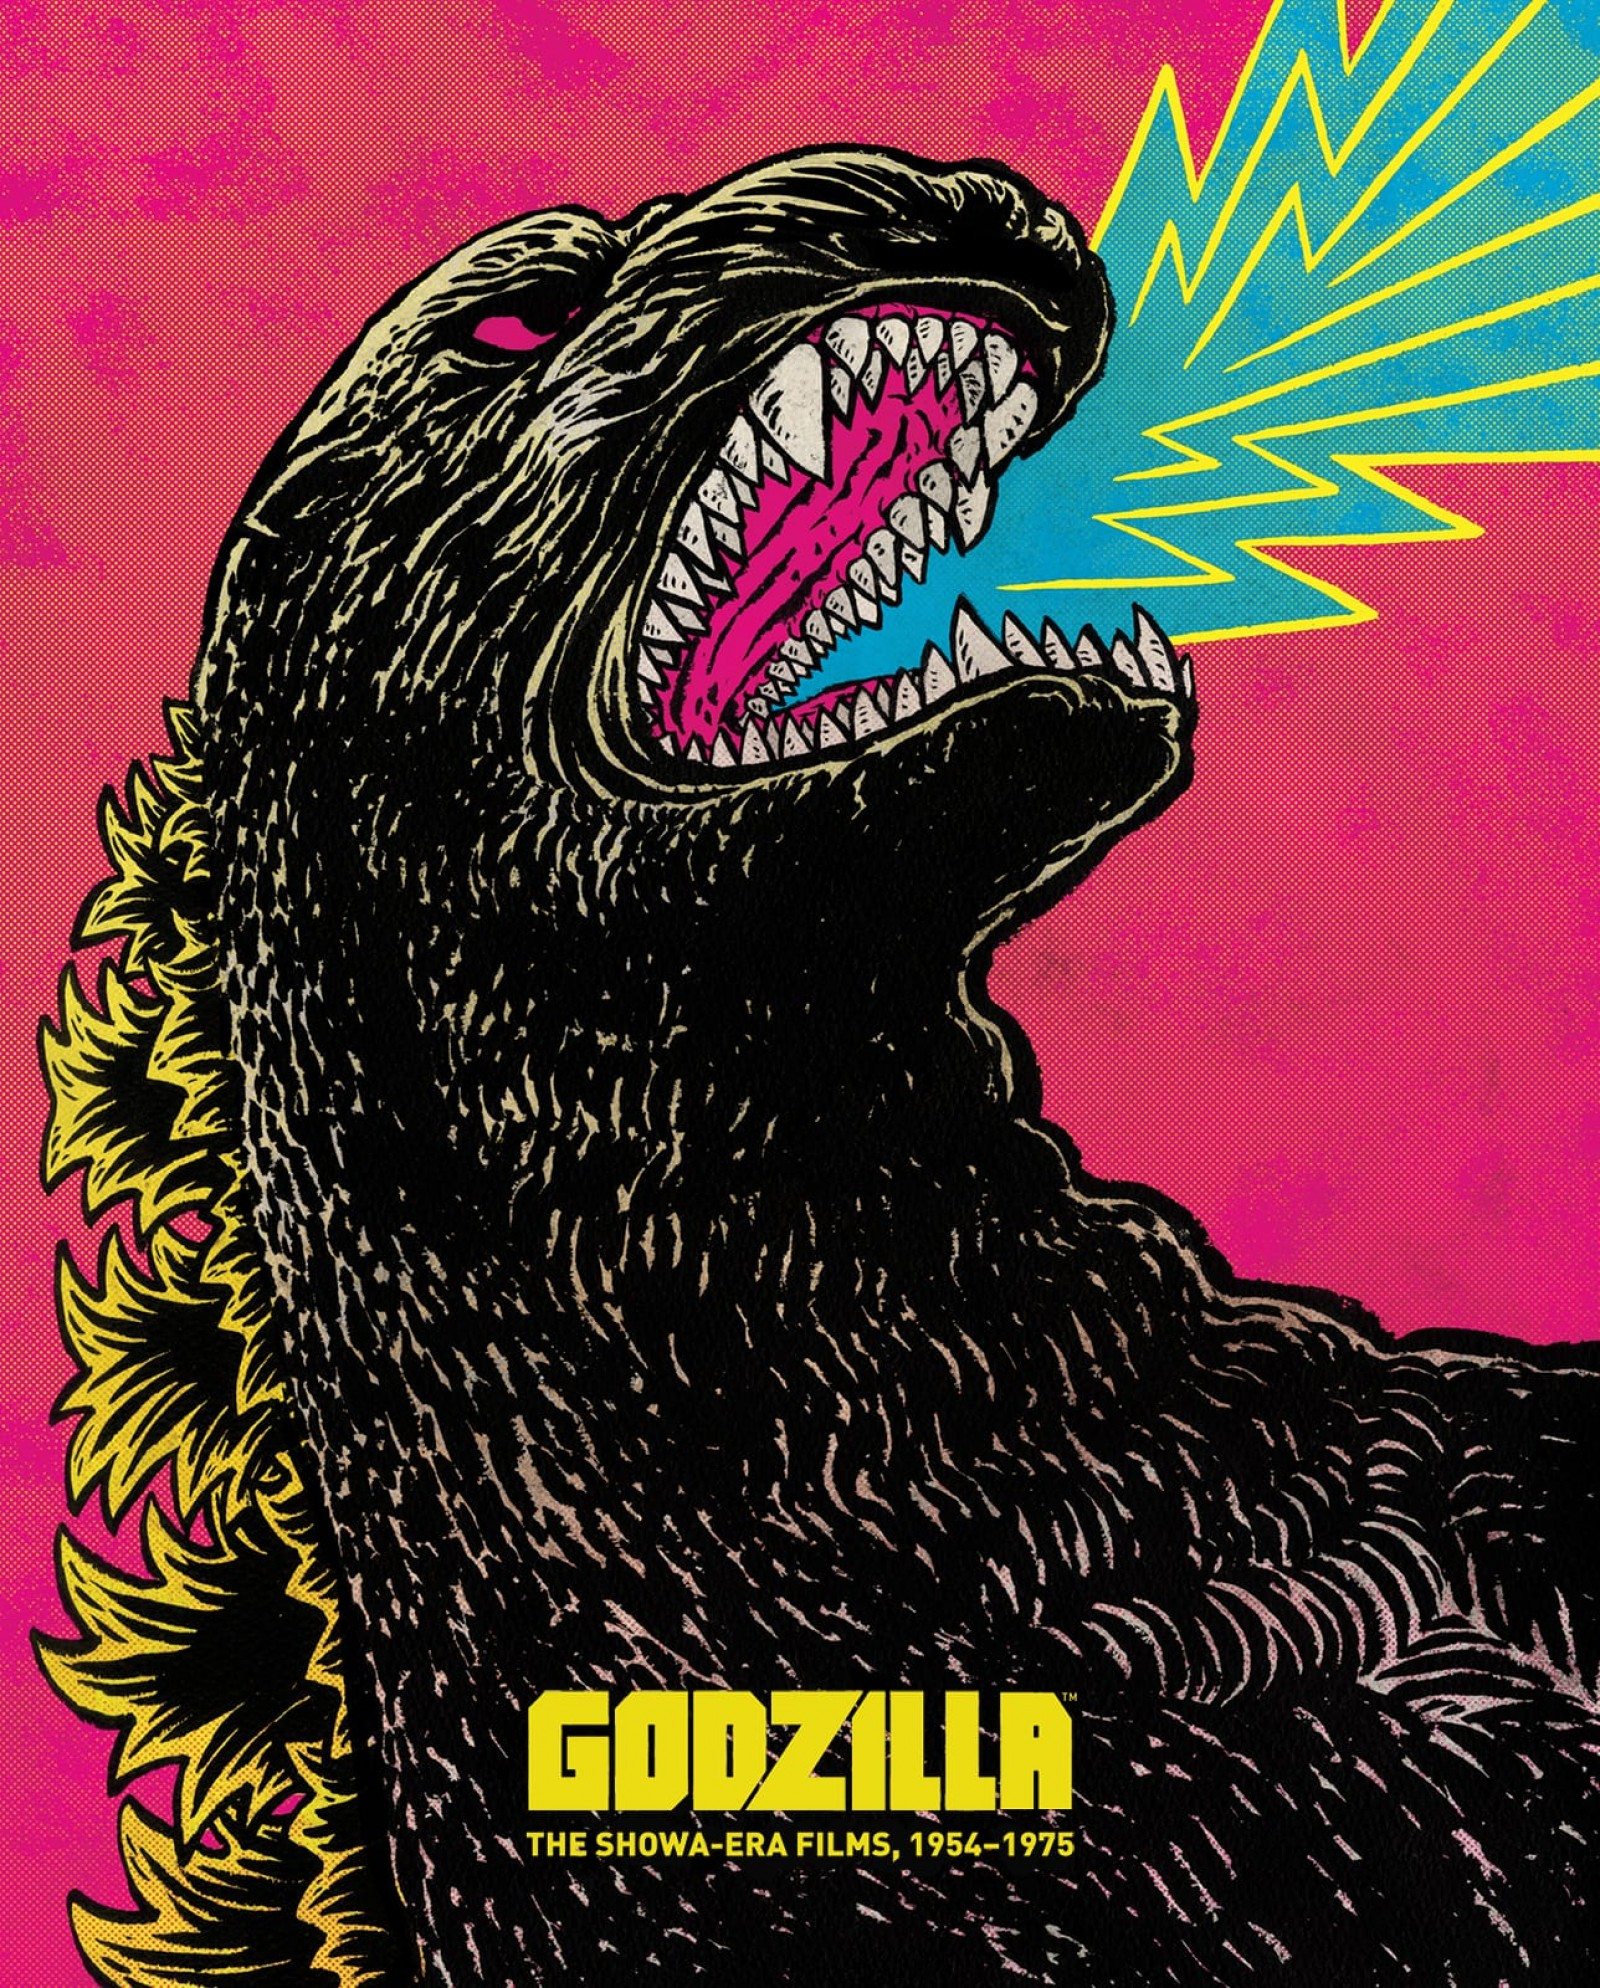 https://www.criterion.com/boxsets/2648-godzilla-the-showa-era-films-1954-1975  SPECIAL FEATURES  High-definition digital transfers of all fifteen Godzilla films made between 1954 and 1975, released together for the first time, with uncompressed monaural soundtracks  High-definition digital transfers of Godzilla, King of the Monsters, the 1956 U.S.-release version of Godzilla; and the 1962 Japanese-release version of King Kong vs. Godzilla  Audio commentaries from 2011 on Godzilla and Godzilla, King of the Monsters featuring film historian David Kalat  International English-language dub tracks for Invasion of Astro-Monster, Son of Godzilla, Destroy All Monsters, Godzilla vs. Megalon, Godzilla vs. Mechagodzilla, and Terror of Mechagodzilla  Directors Guild of Japan interview with director Ishiro Honda, conducted by director Yoshimitsu Banno in 1990  Programs detailing the creation of Godzilla's special effects and unused effects sequences from Toho releases including Destroy All Monsters  New interview with filmmaker Alex Cox about his admiration for the Showa-era Godzilla films  New and archival interviews with cast and crew members, including actors Bin Furuya, Tsugutoshi Komada, Haruo Nakajima, and Akira Takarada; composer Akira Ifukube; and effects technicians Yoshio Irie and Eizo Kaimai  Interview with critic Tadao Sato from 2011  Illustrated audio essay from 2011 about the real-life tragedy that inspired Godzilla  New English subtitle translations  Trailers  PLUS: A lavishly illustrated deluxe hardcover book featuring an essay by cinema historian Steve Ryfle, notes on the films by cinema historian Ed Godziszewski, and new illustrations by Arthur Adams, Sophie Campbell, Becky Cloonan, Jorge Coelho, Geof Darrow, Simon Gane, Robert Goodin, Benjamin Marra, Monarobot, Takashi Okazaki, Angela Rizza, Yuko Shimizu, Bill Sienkiewicz, Katsuya Terada, Ronald Wimberly, and Chris Wisnia